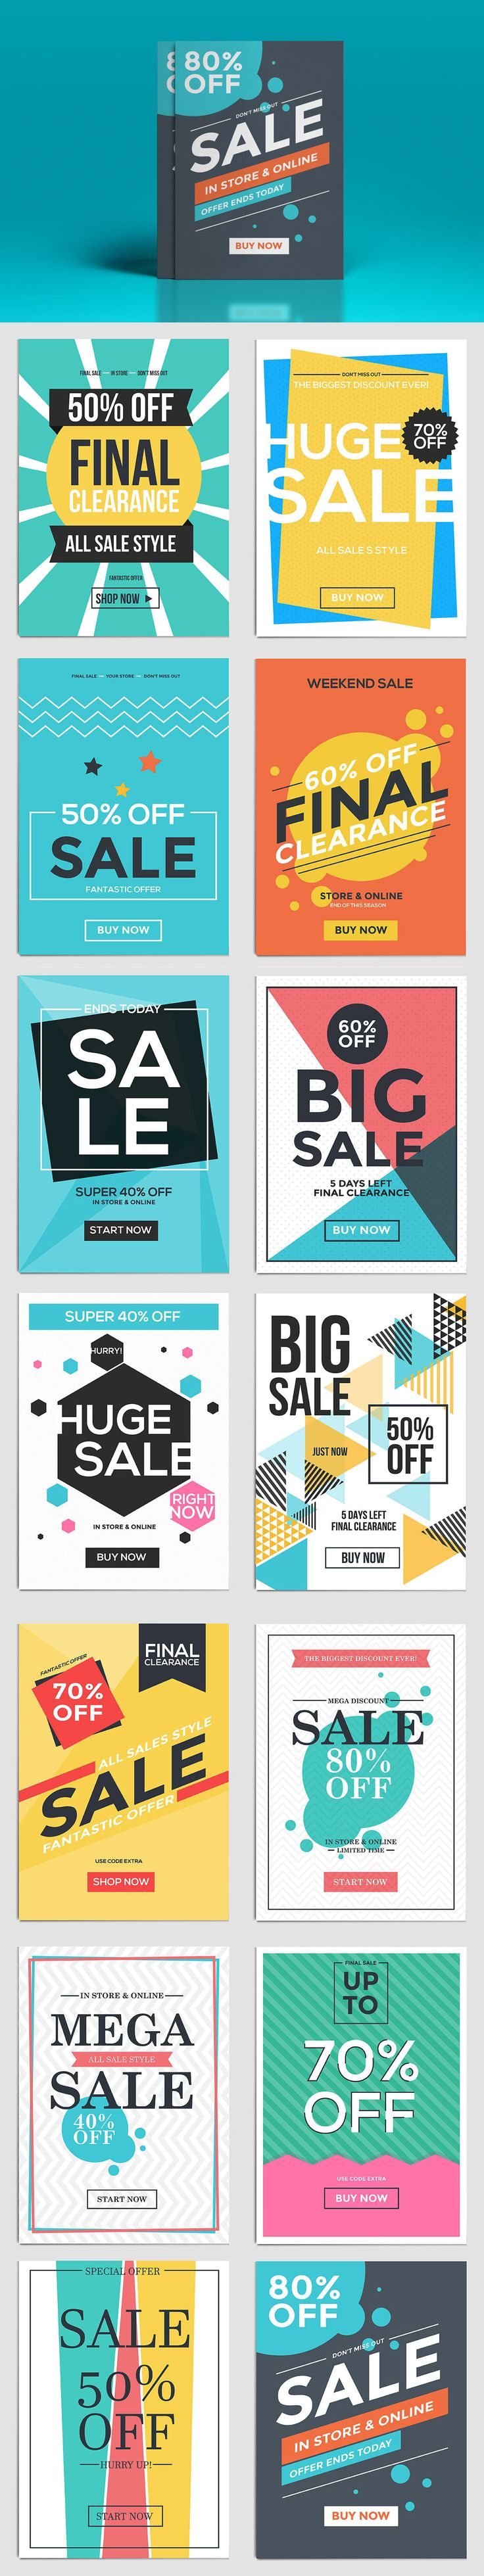 Poster 60 x 80 design - Poster 60 X 80 Design Flat Design Sale Flyer Template Ai Eps Download